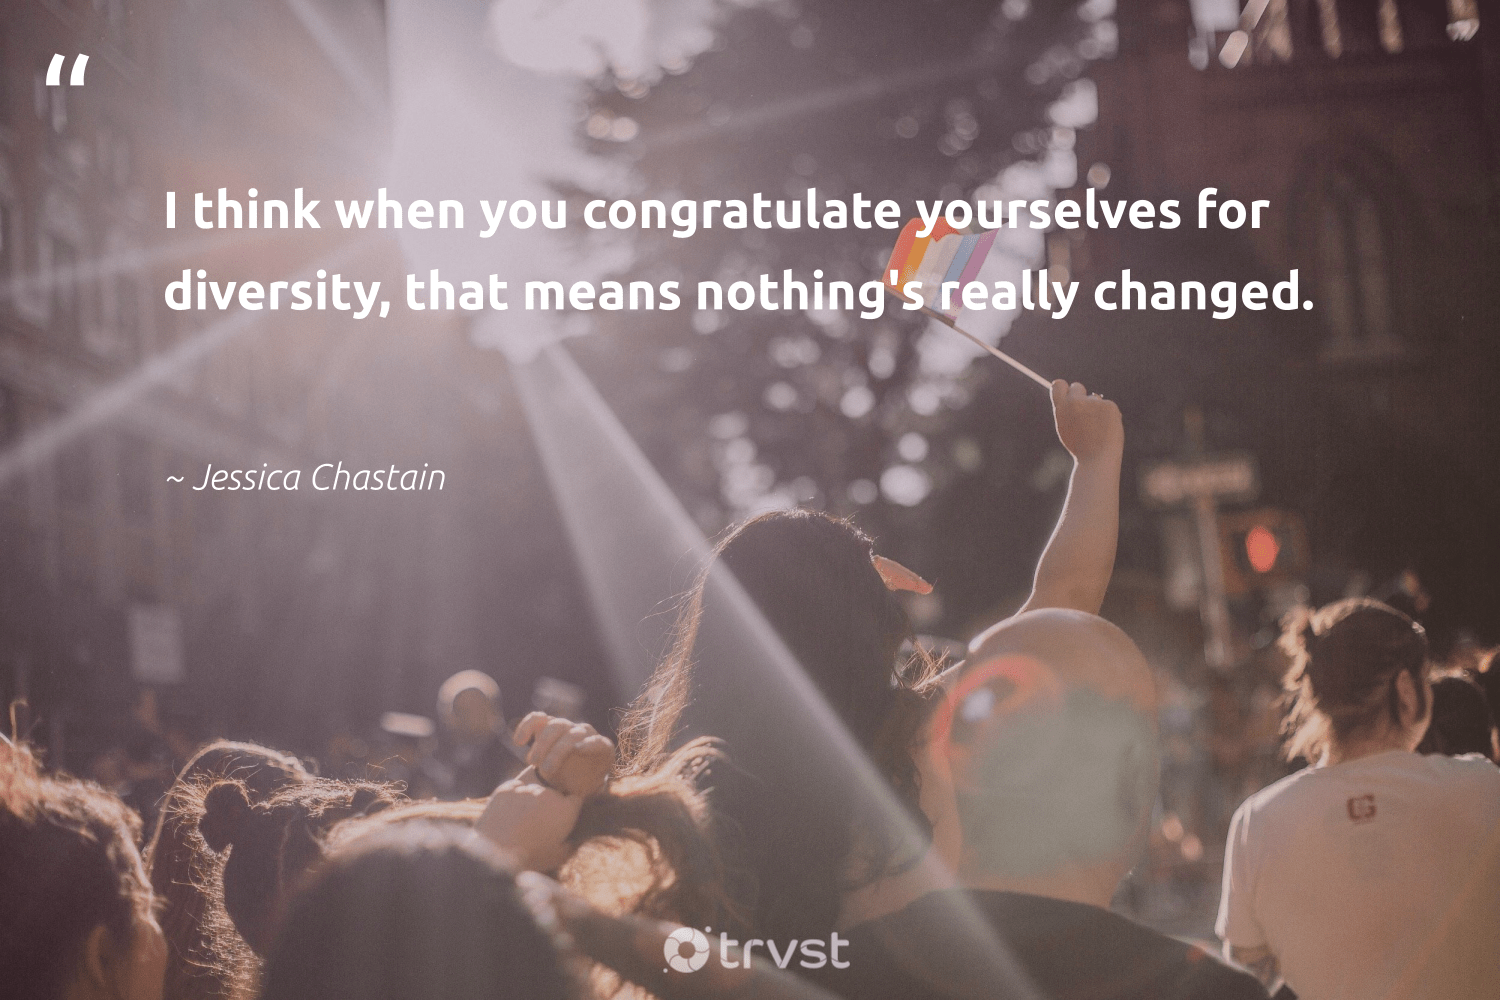 """I think when you congratulate yourselves for diversity, that means nothing's really changed.""  - Jessica Chastain #trvst #quotes #diversity #representationmatters #inclusion #socialgood #makeadifference #bethechange #discrimination #giveback #socialchange #dotherightthing"